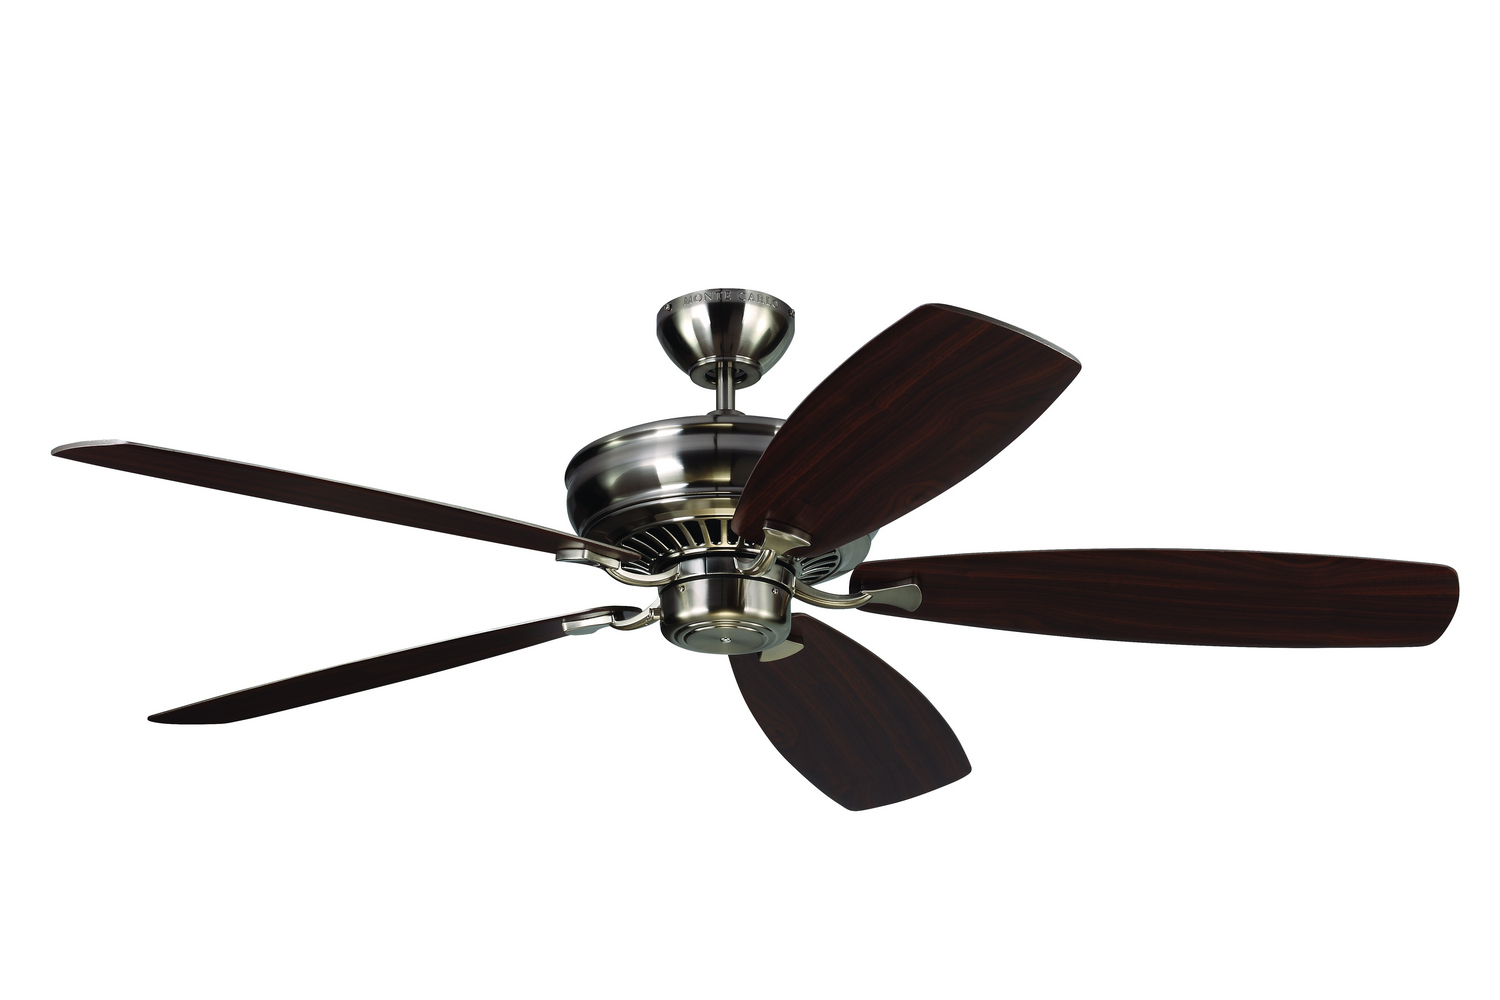 60 inch Ceiling Fan from the Bonneville Max collection by Monte Carlo 5BHM60BS